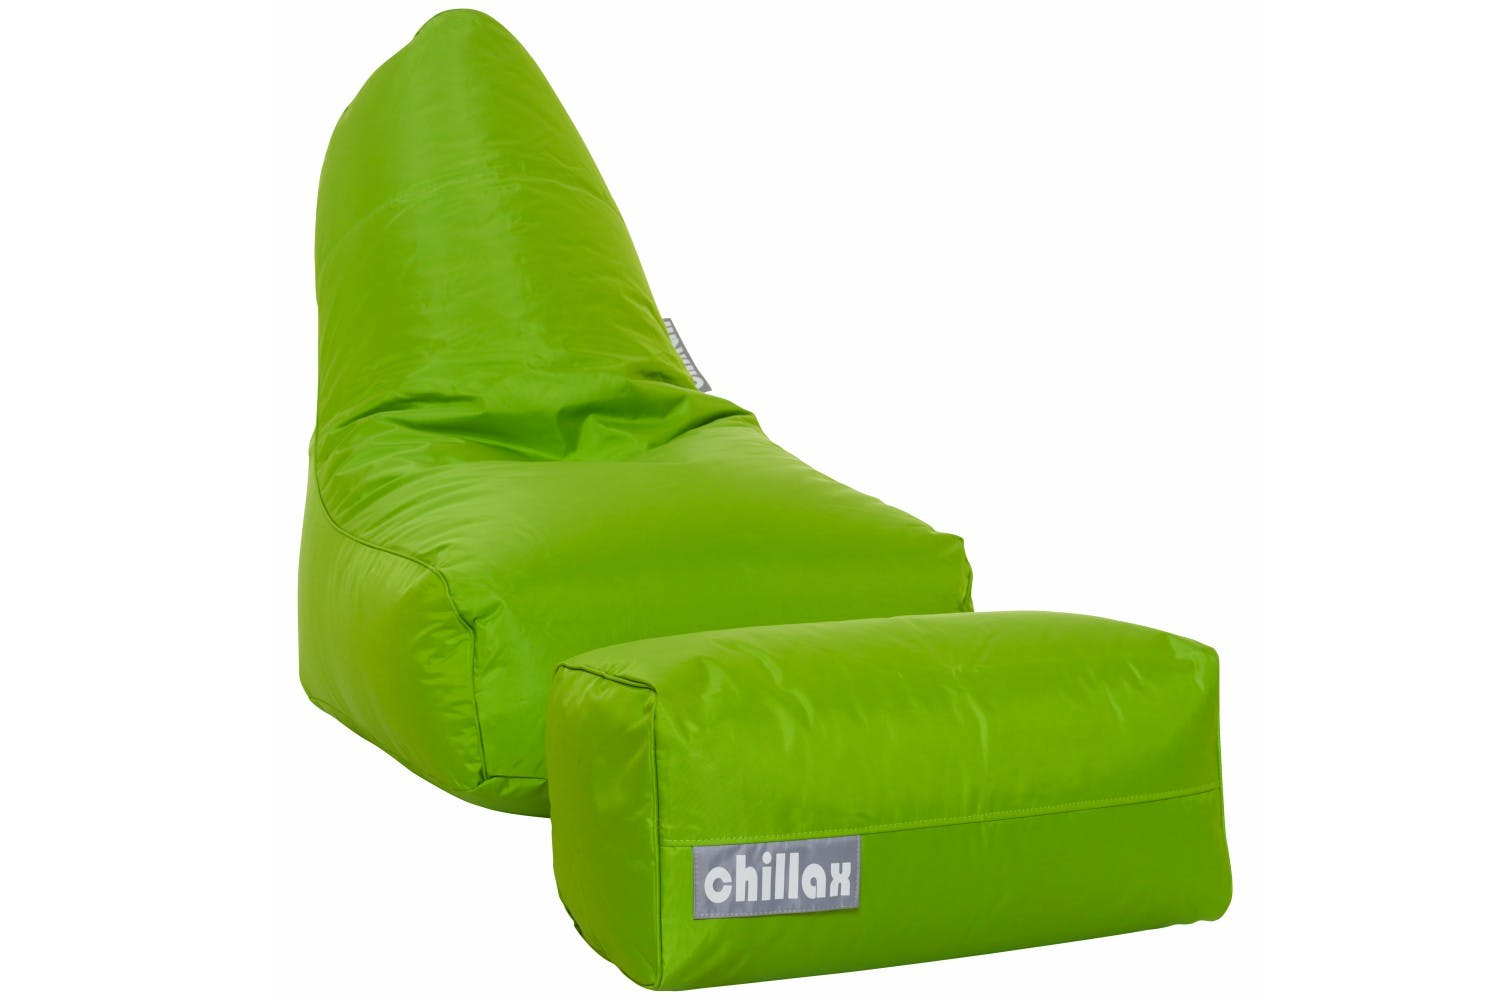 Chillax Seat Footrest Bean Bag